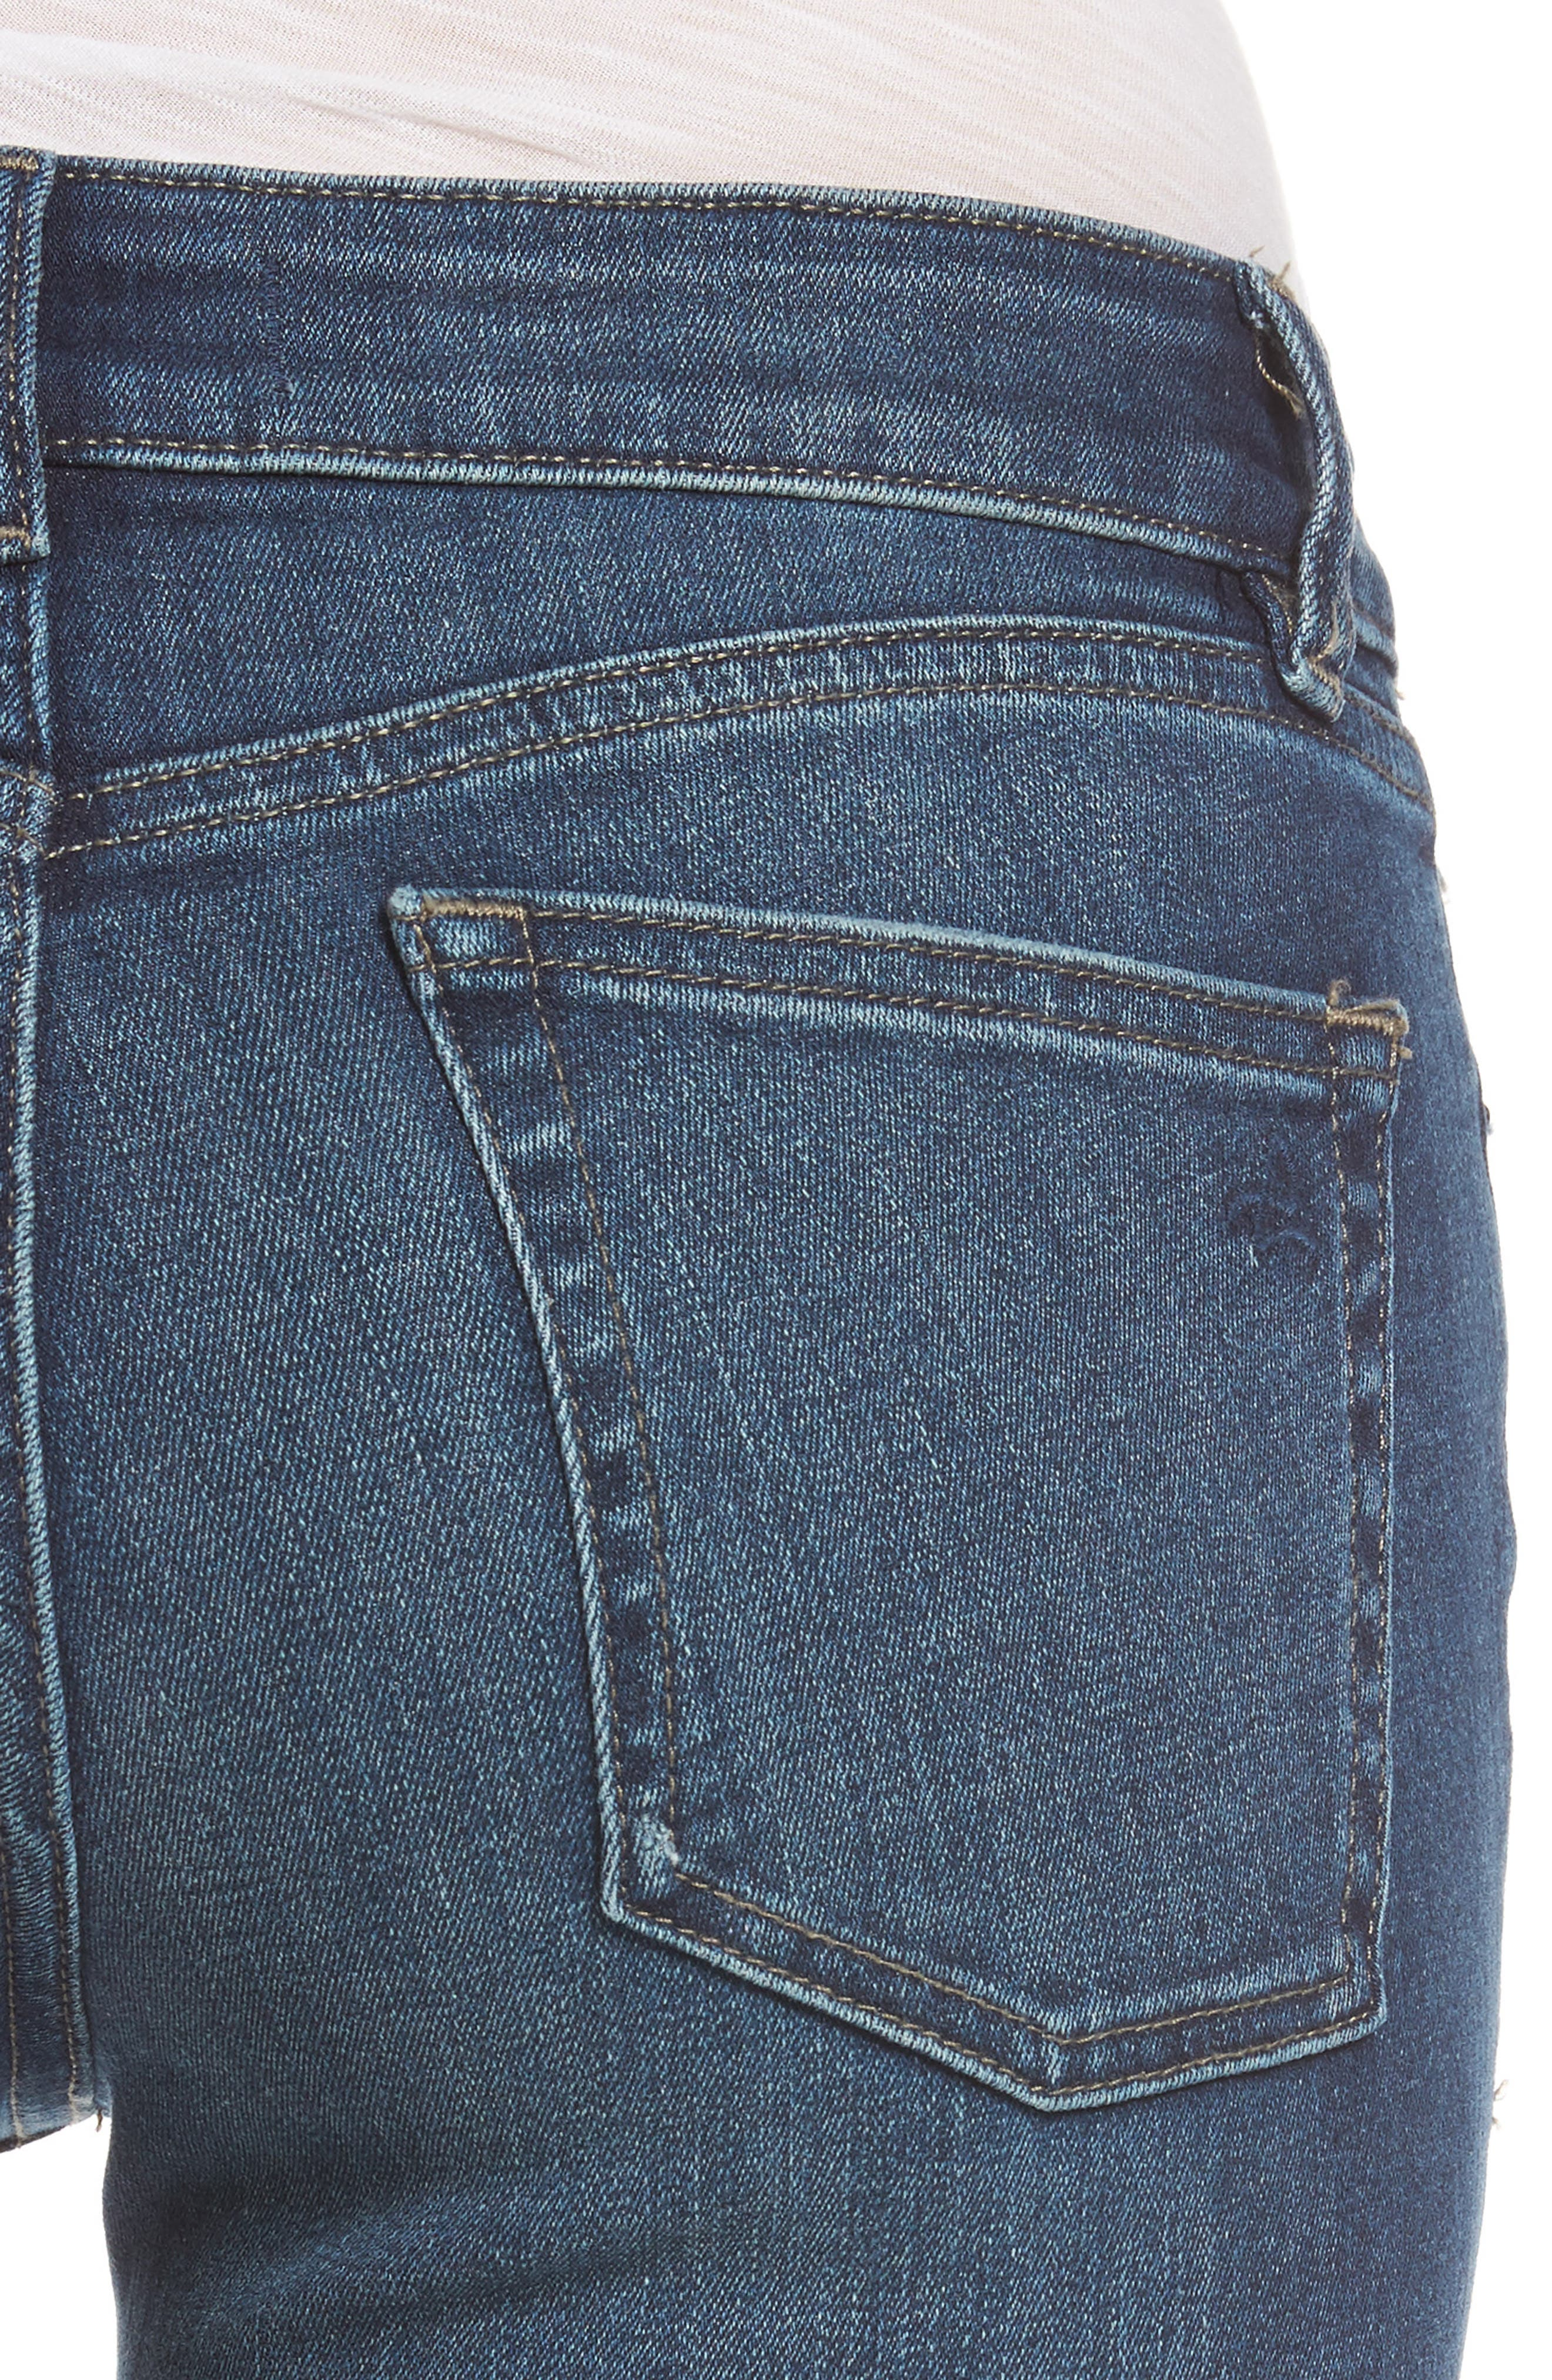 Bridget Bootcut Jeans,                             Alternate thumbnail 4, color,                             425